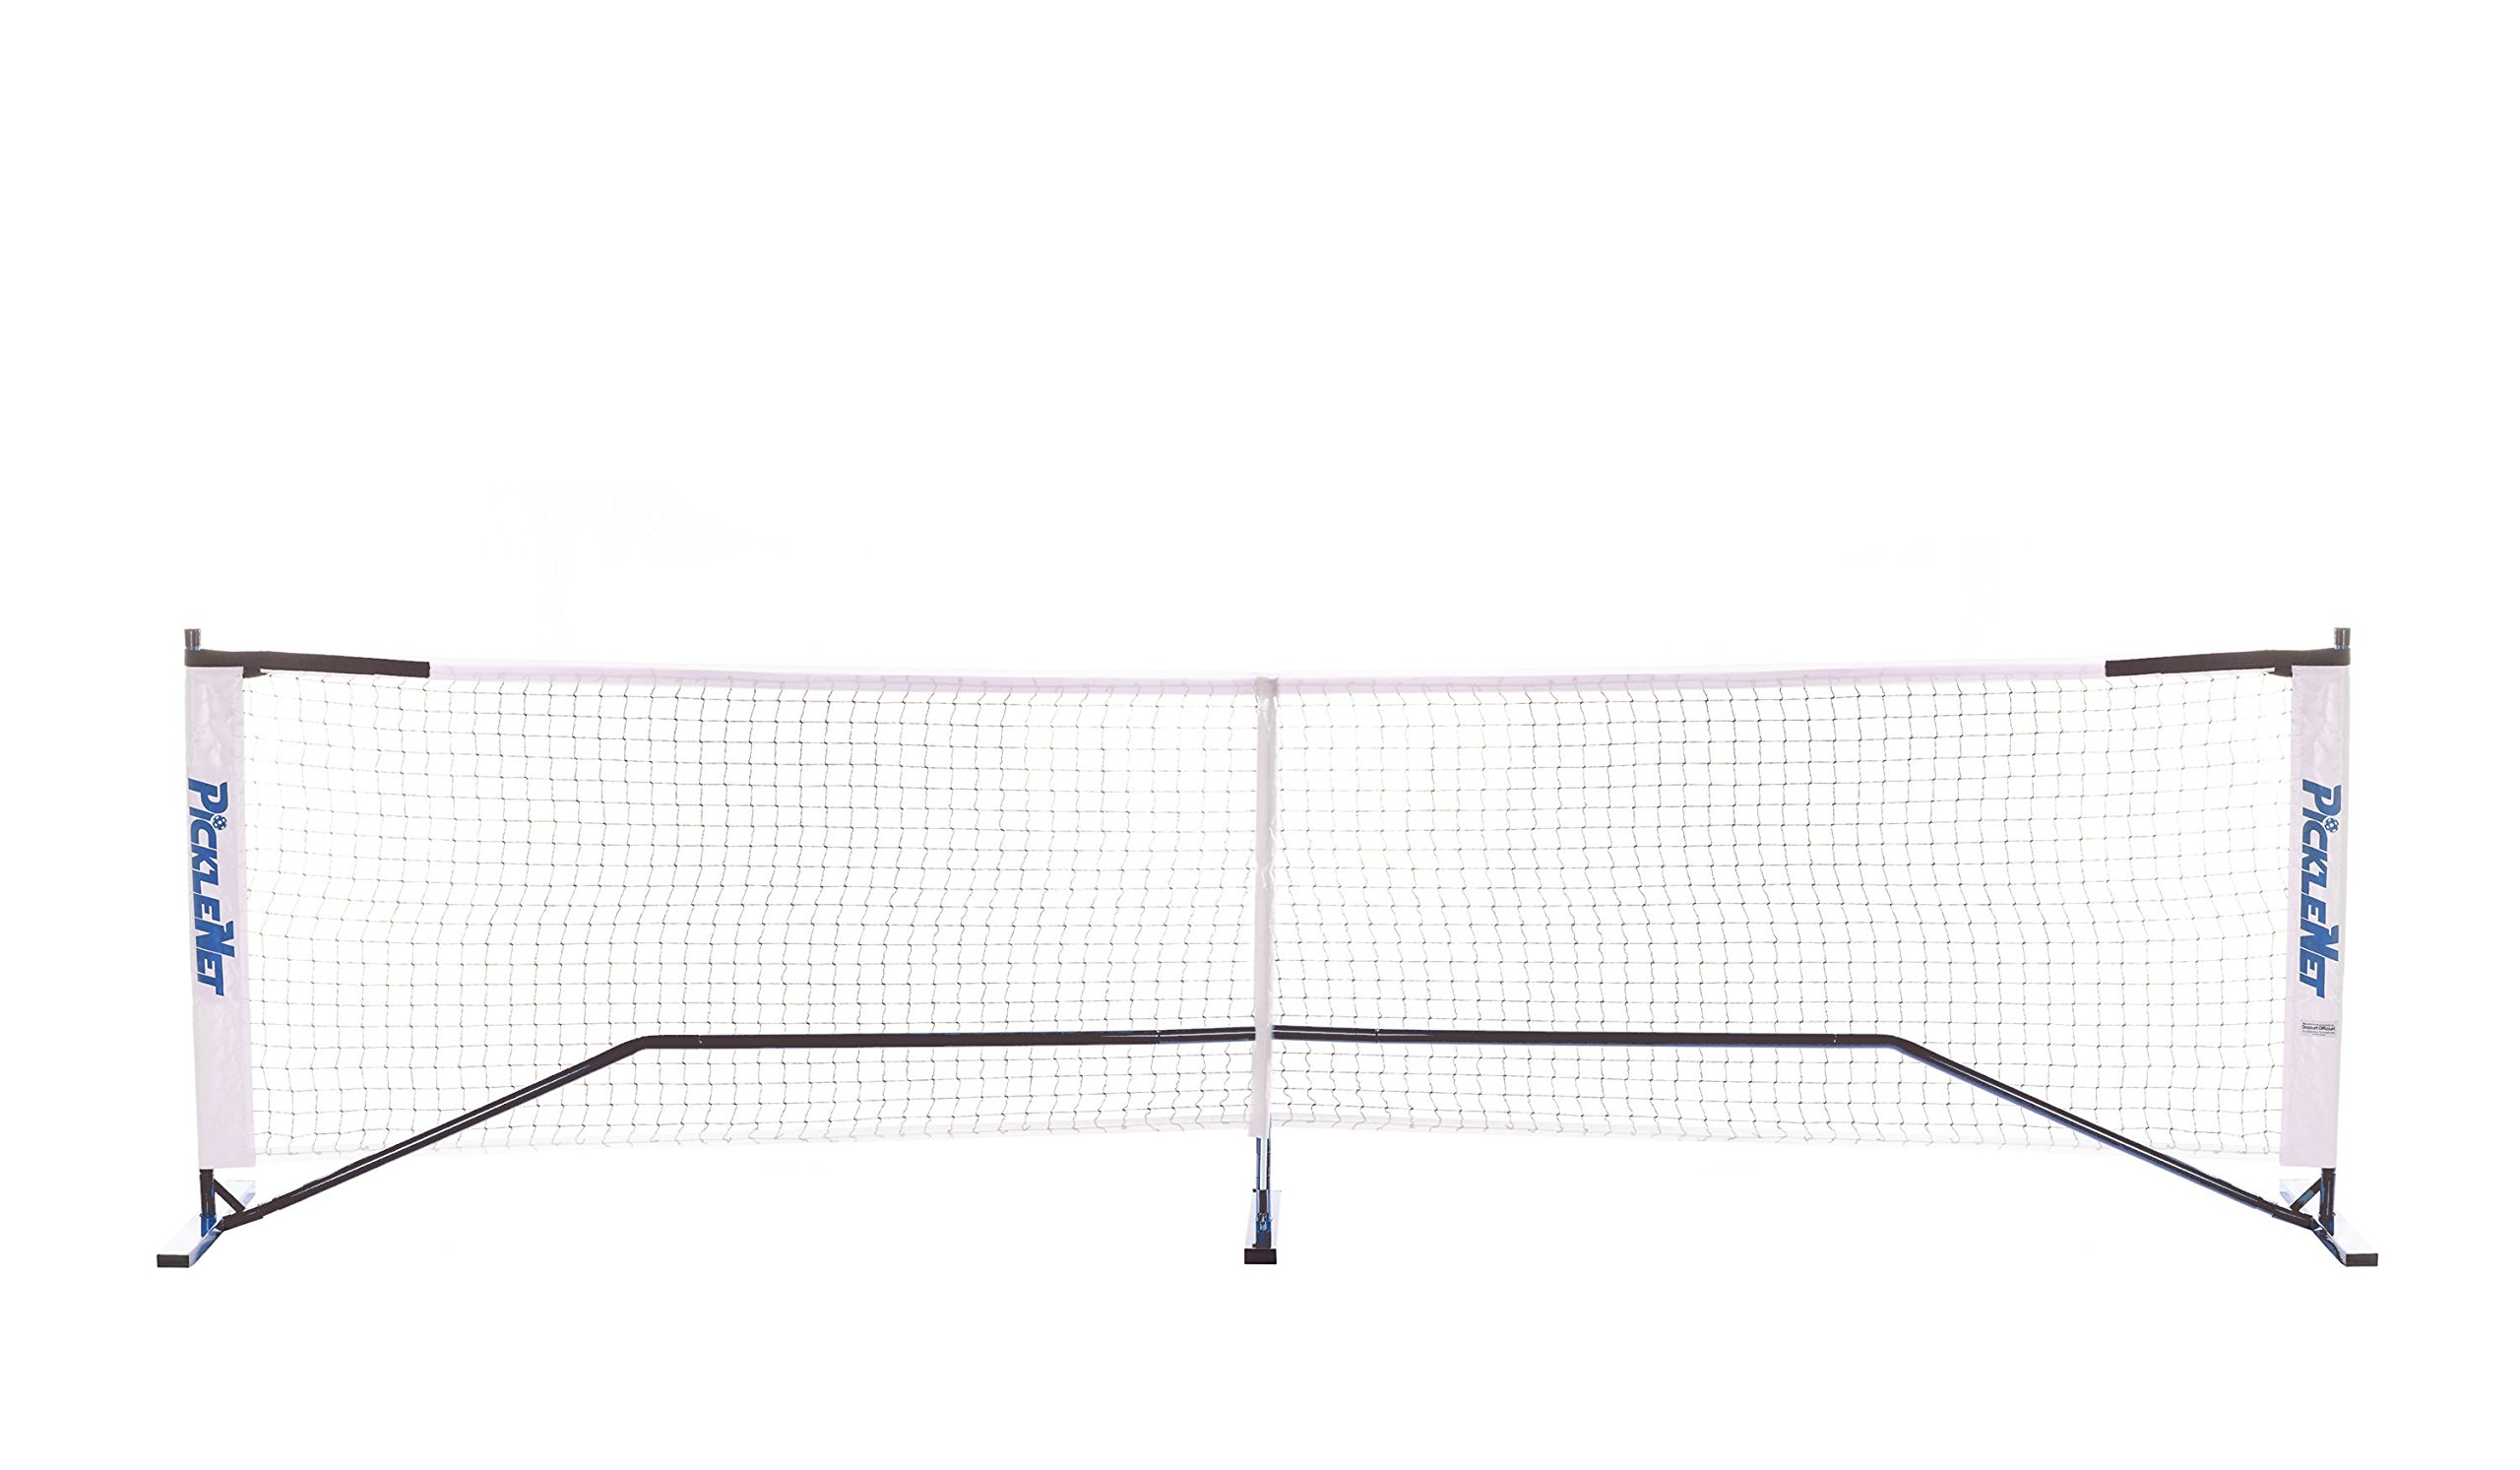 Classic PickleNet Pickleball Net System (Set Includes Metal Frame and Net in Carry Bag) by Oncourt Offcourt